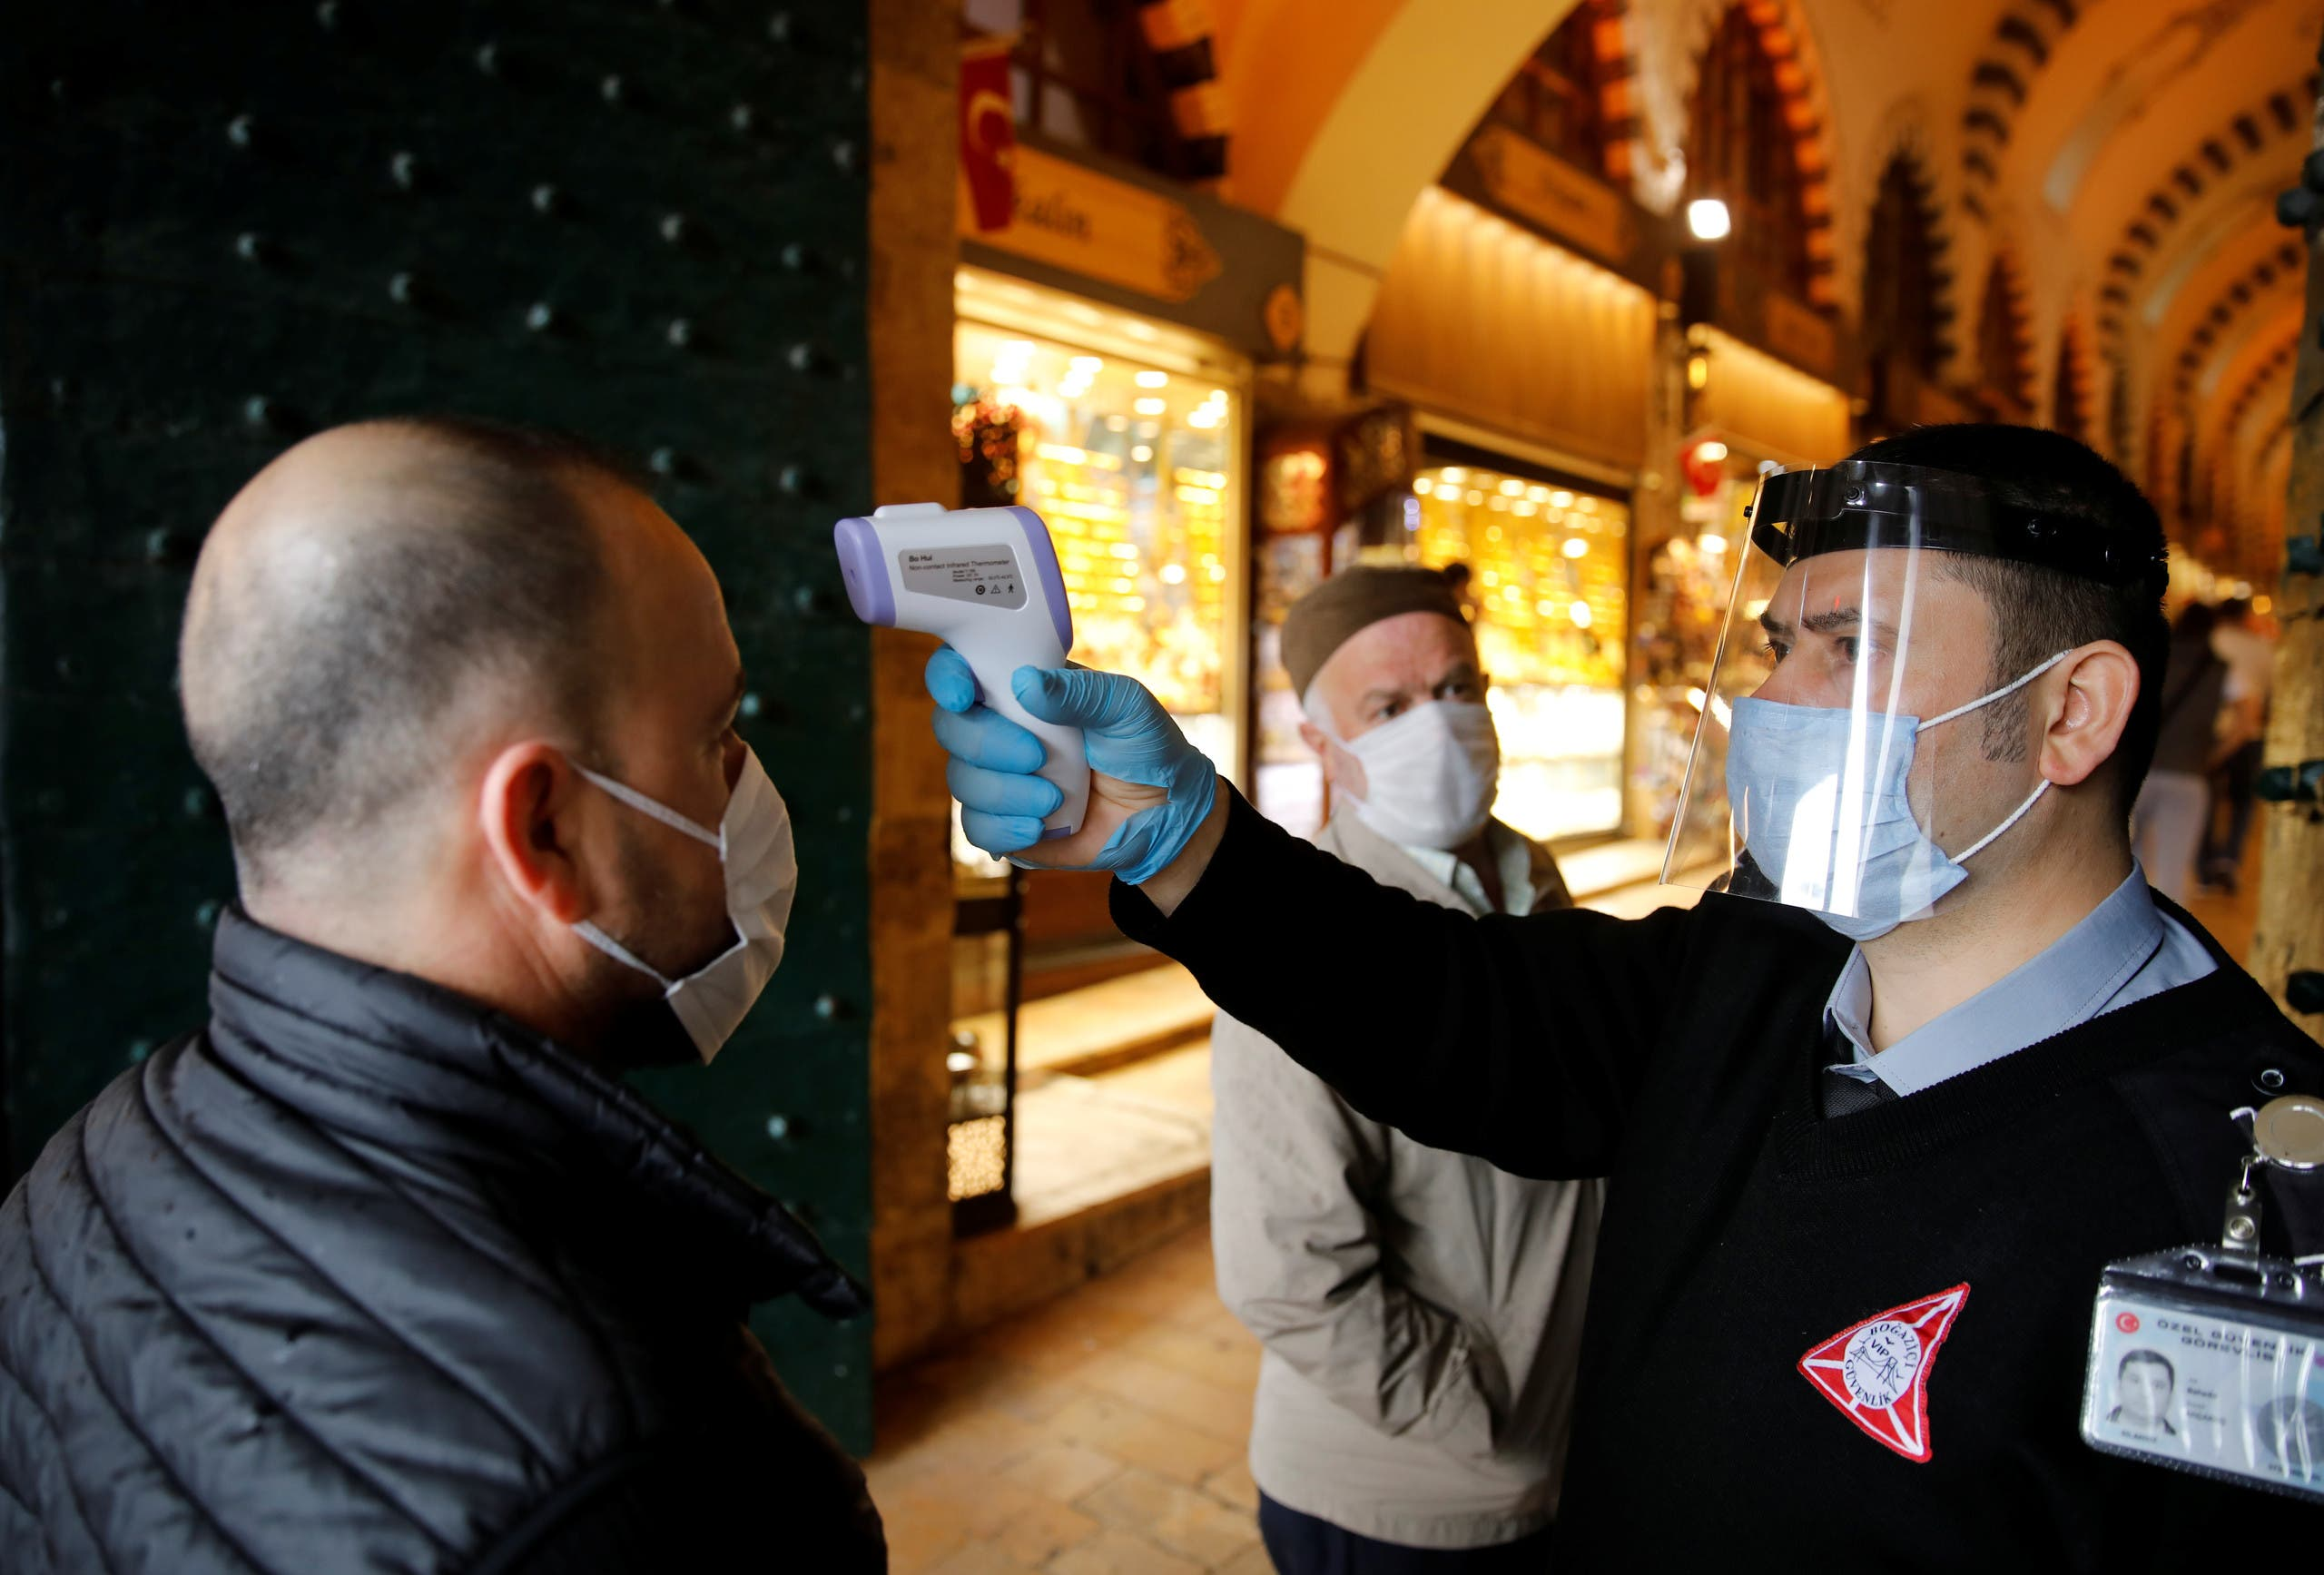 A security guard checks the body temperature of a customer at the entrance of the spice market in Istanbul, Turkey, June 1, 2020. (Reuters)